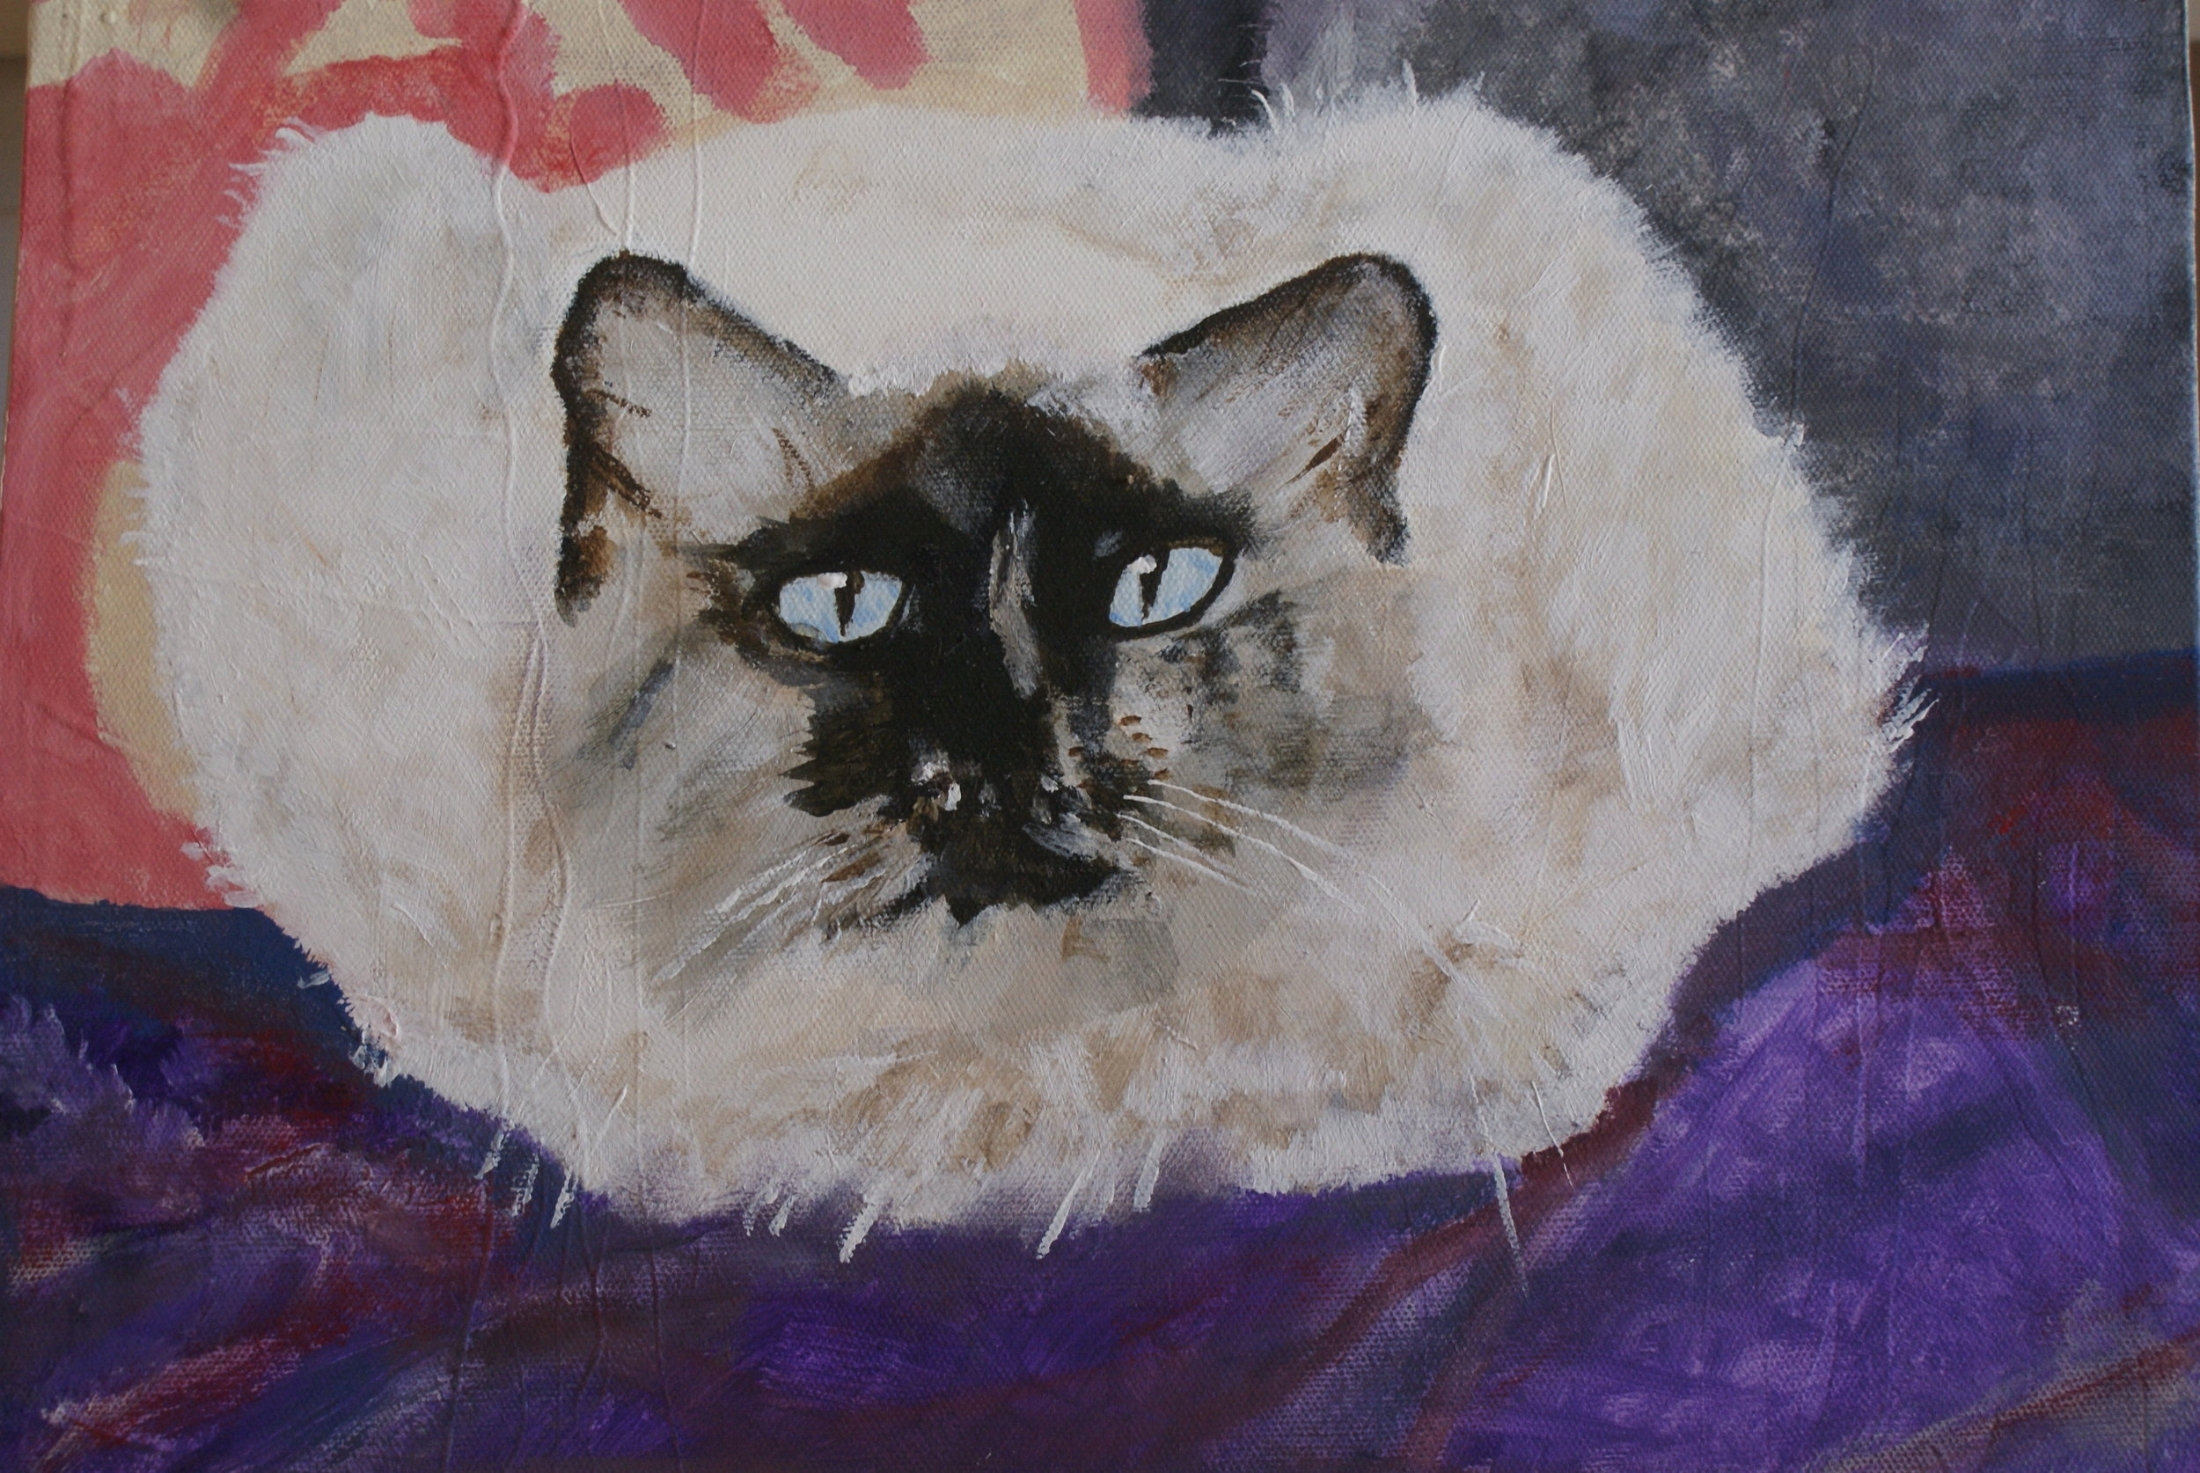 Maggie. (2000 - 2016) Acrylic on canvas. Commission 2018